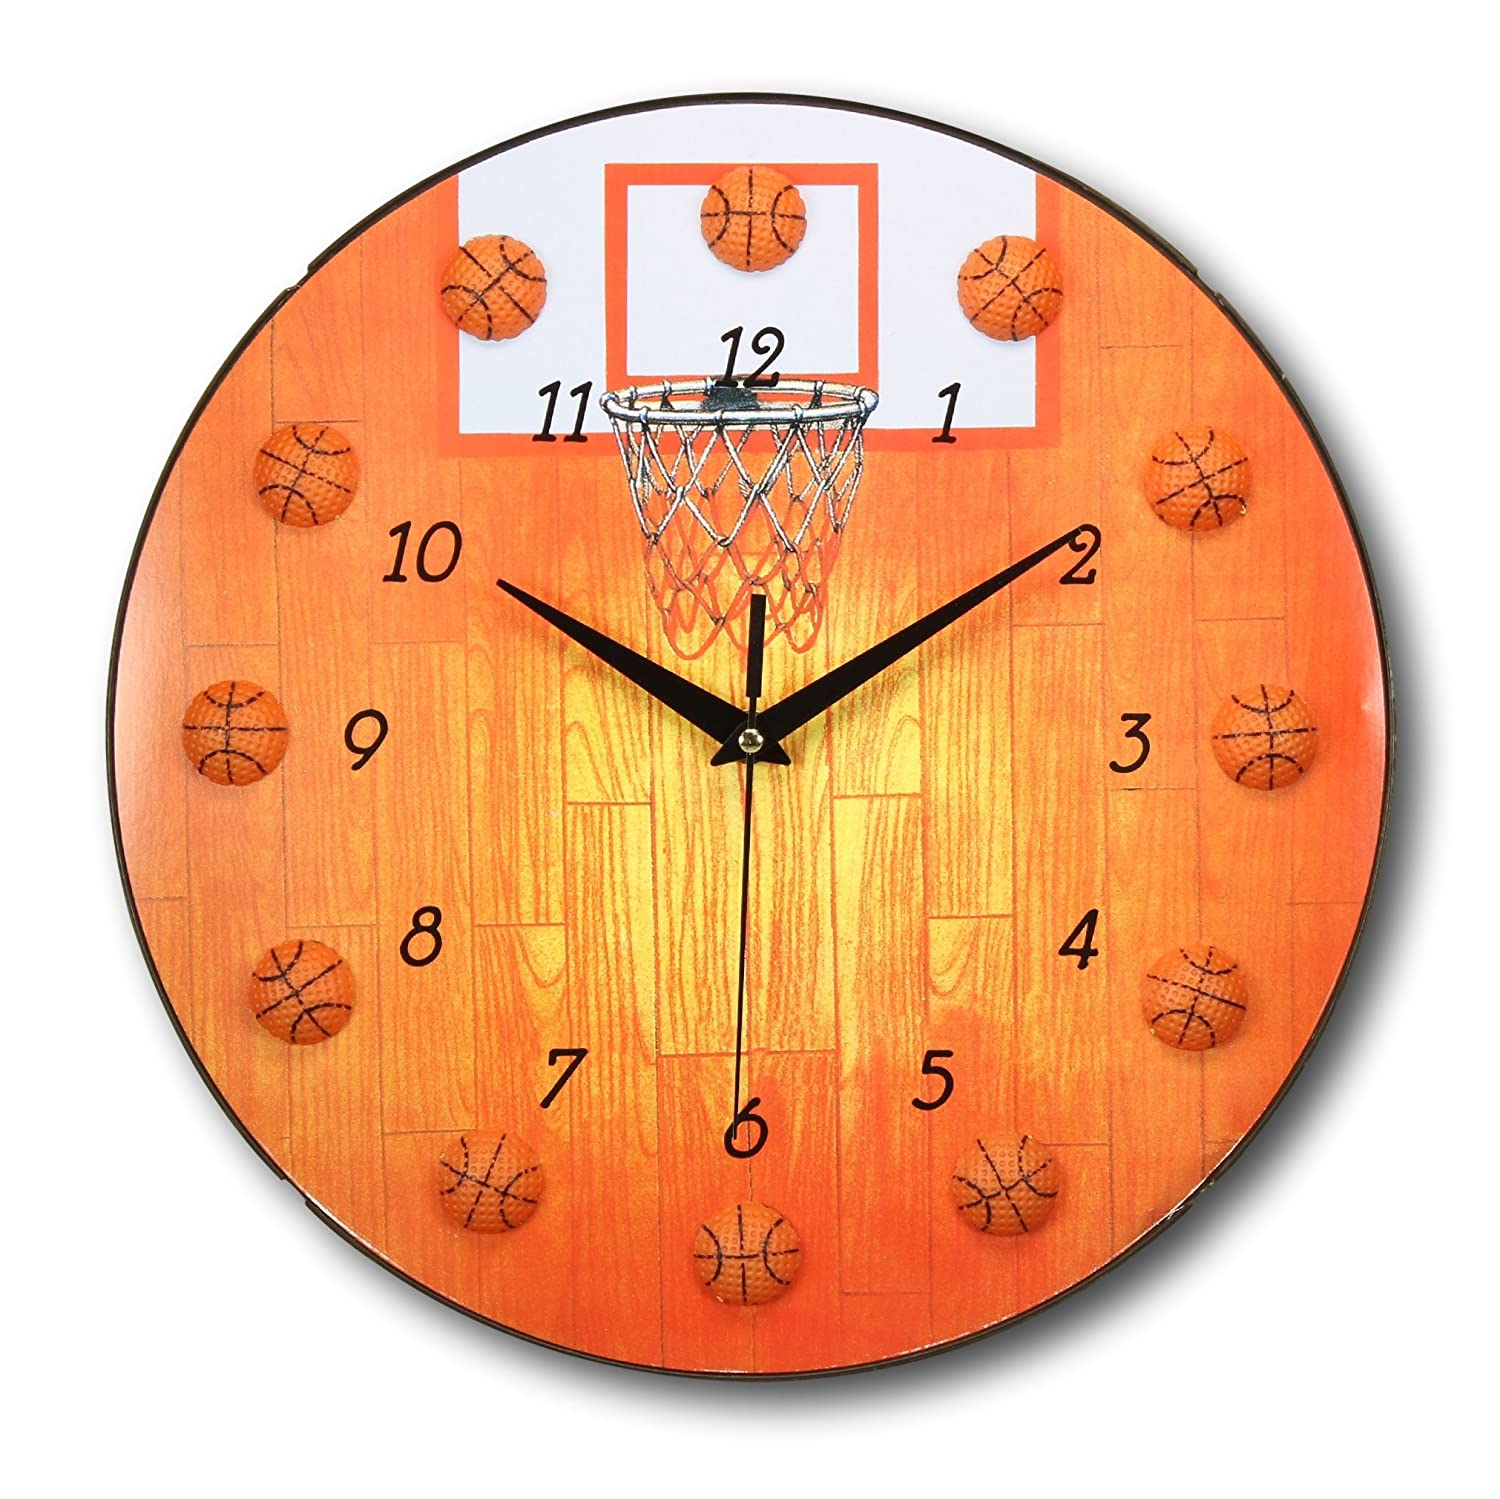 Amazon 13 inch basketball clock sports themed boys and amazon 13 inch basketball clock sports themed boys and girls room wall clocks by bogo brands home kitchen amipublicfo Choice Image